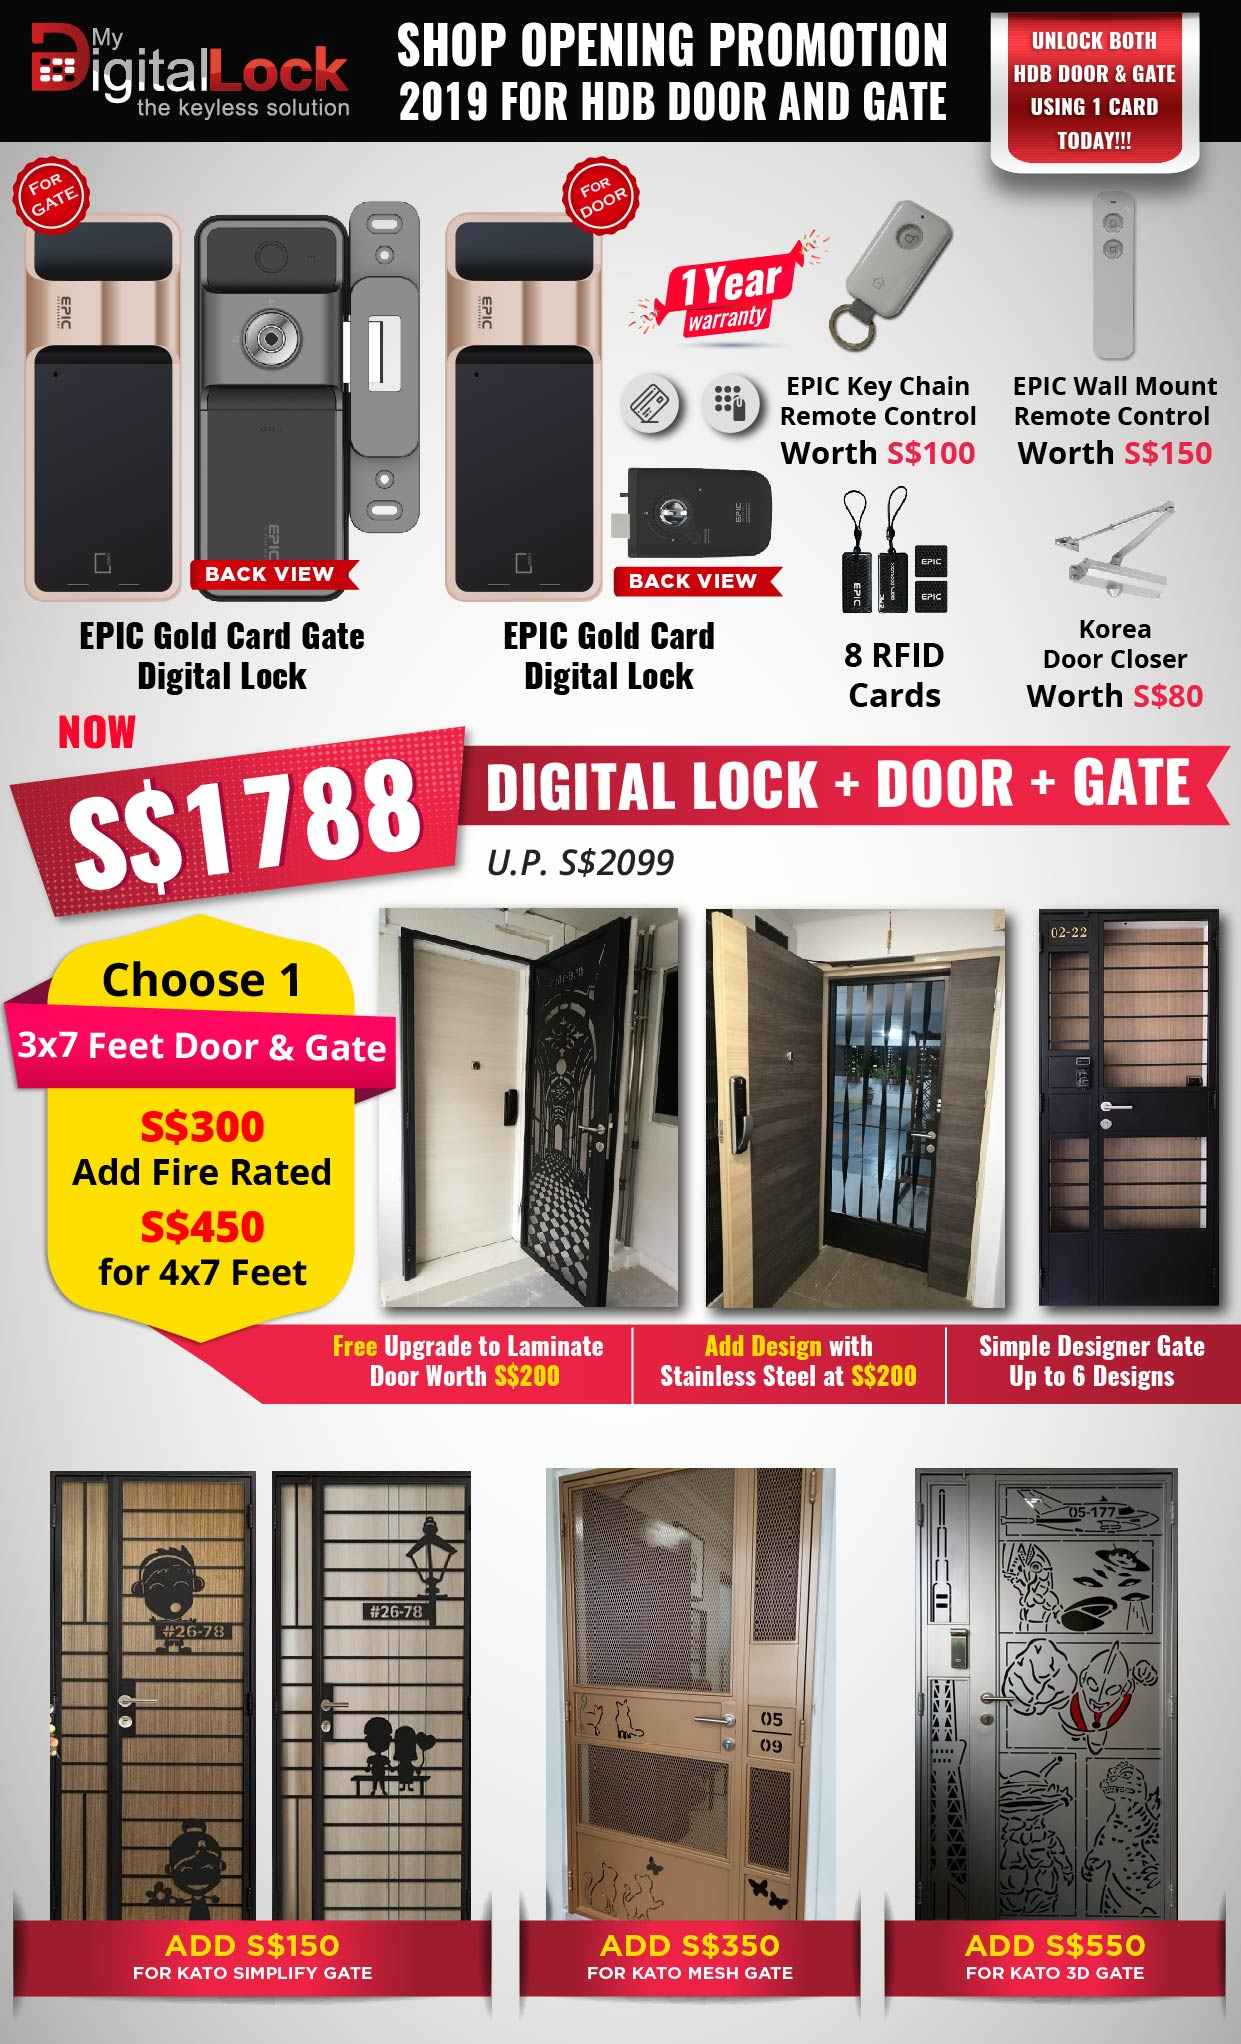 EPIC Gold Card Gate Digital Lock